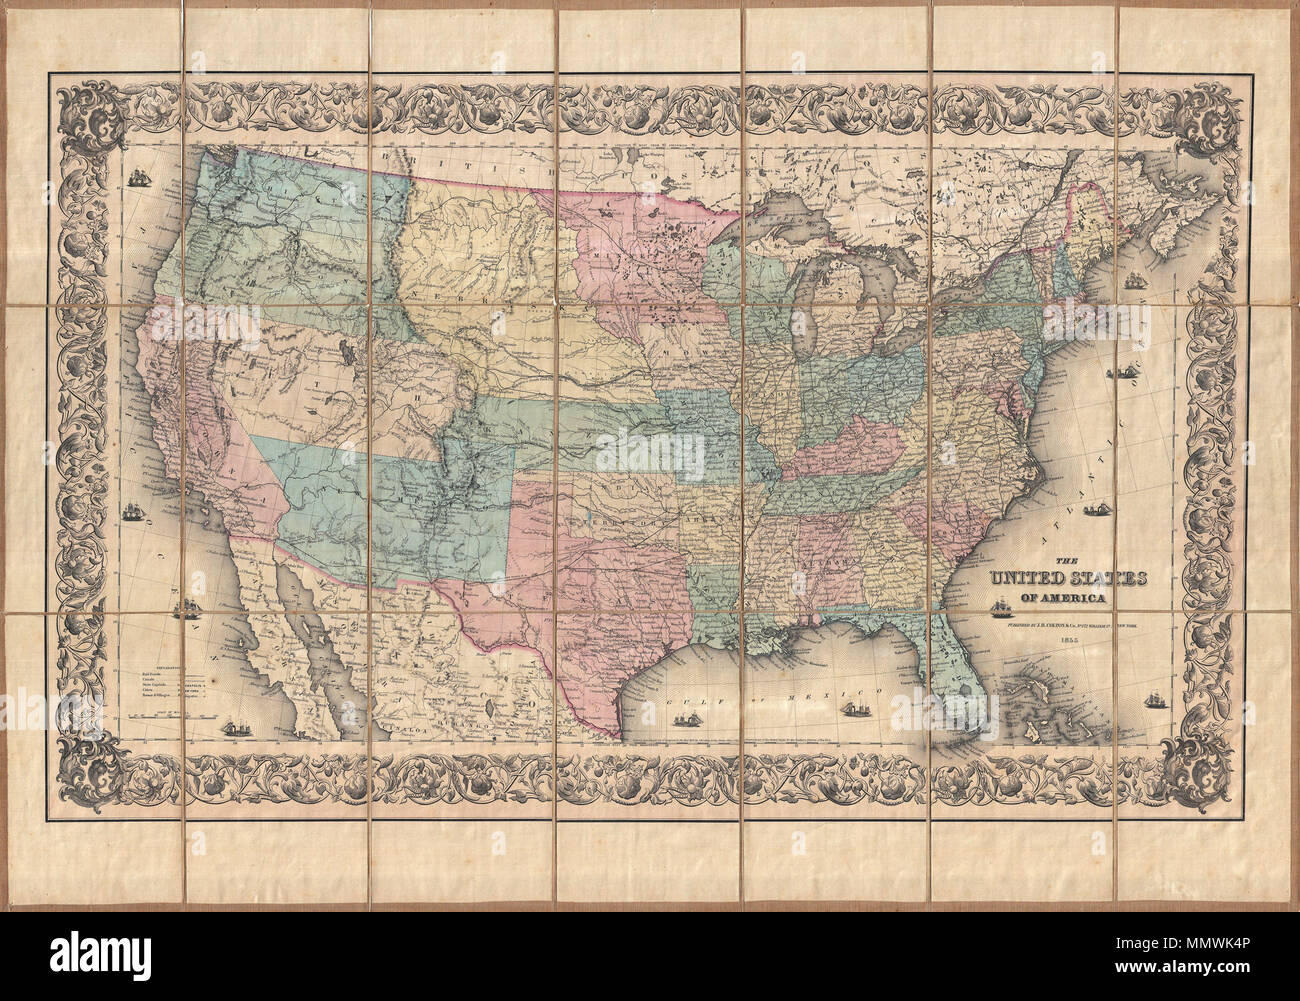 The Oregon Trail Map Stock Photos & The Oregon Trail Map Stock ...